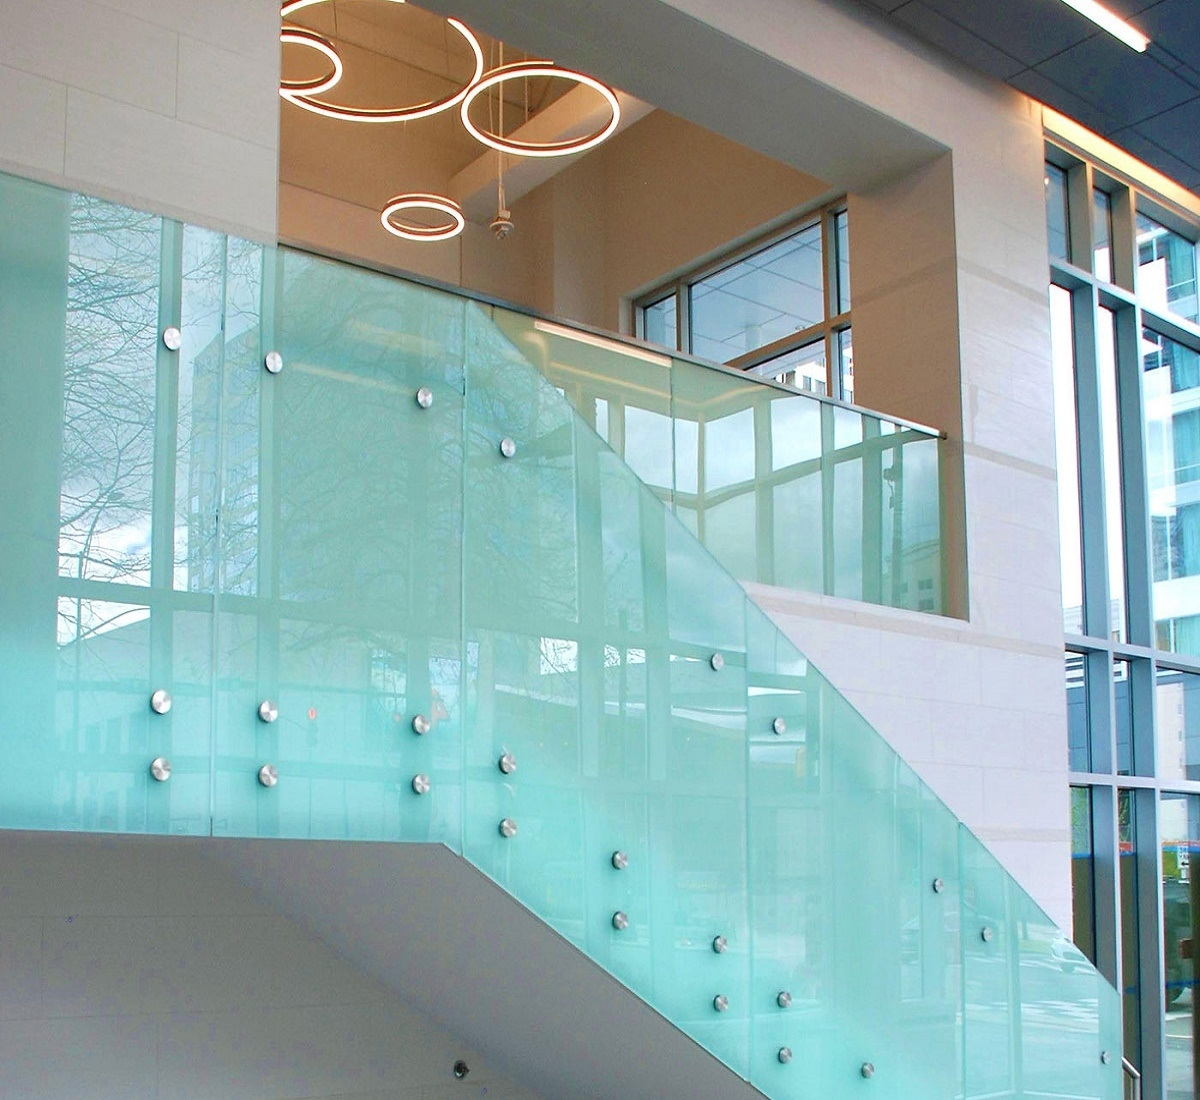 Best Quality Frosted Laminated Glass Stair Railing Design   Stainless Steel Staircase Railing With Glass   Infill   Custom Glass   Indoor   Panel   Modern